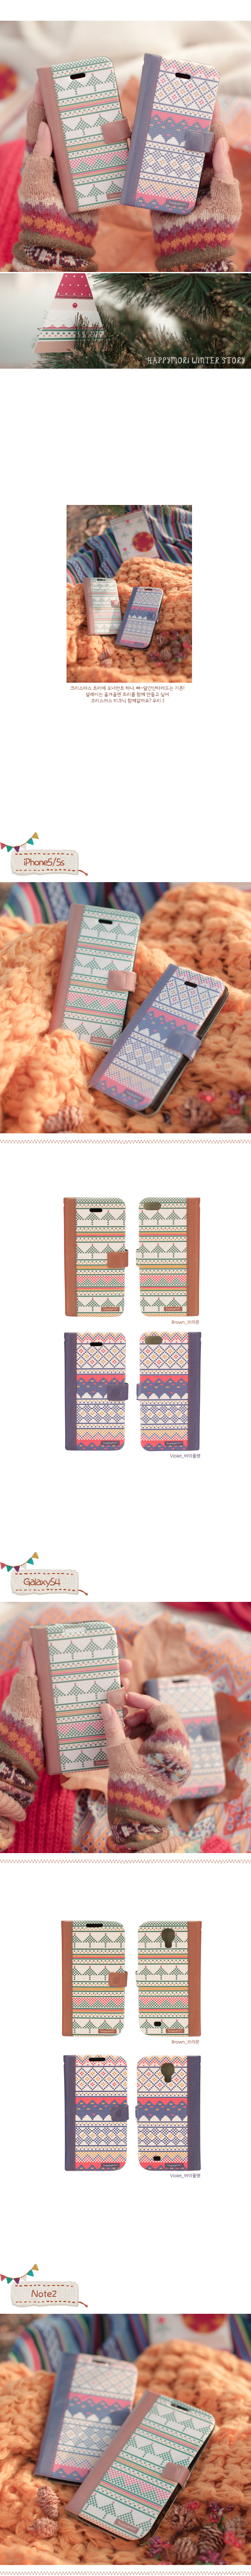 [HAPPYMORI] Flip Cover Case _ Scandinavia(iPhone6Plus,iPhone6Plus_s,Galaxy S6Edge,Galaxy S6,Galaxy Note4)